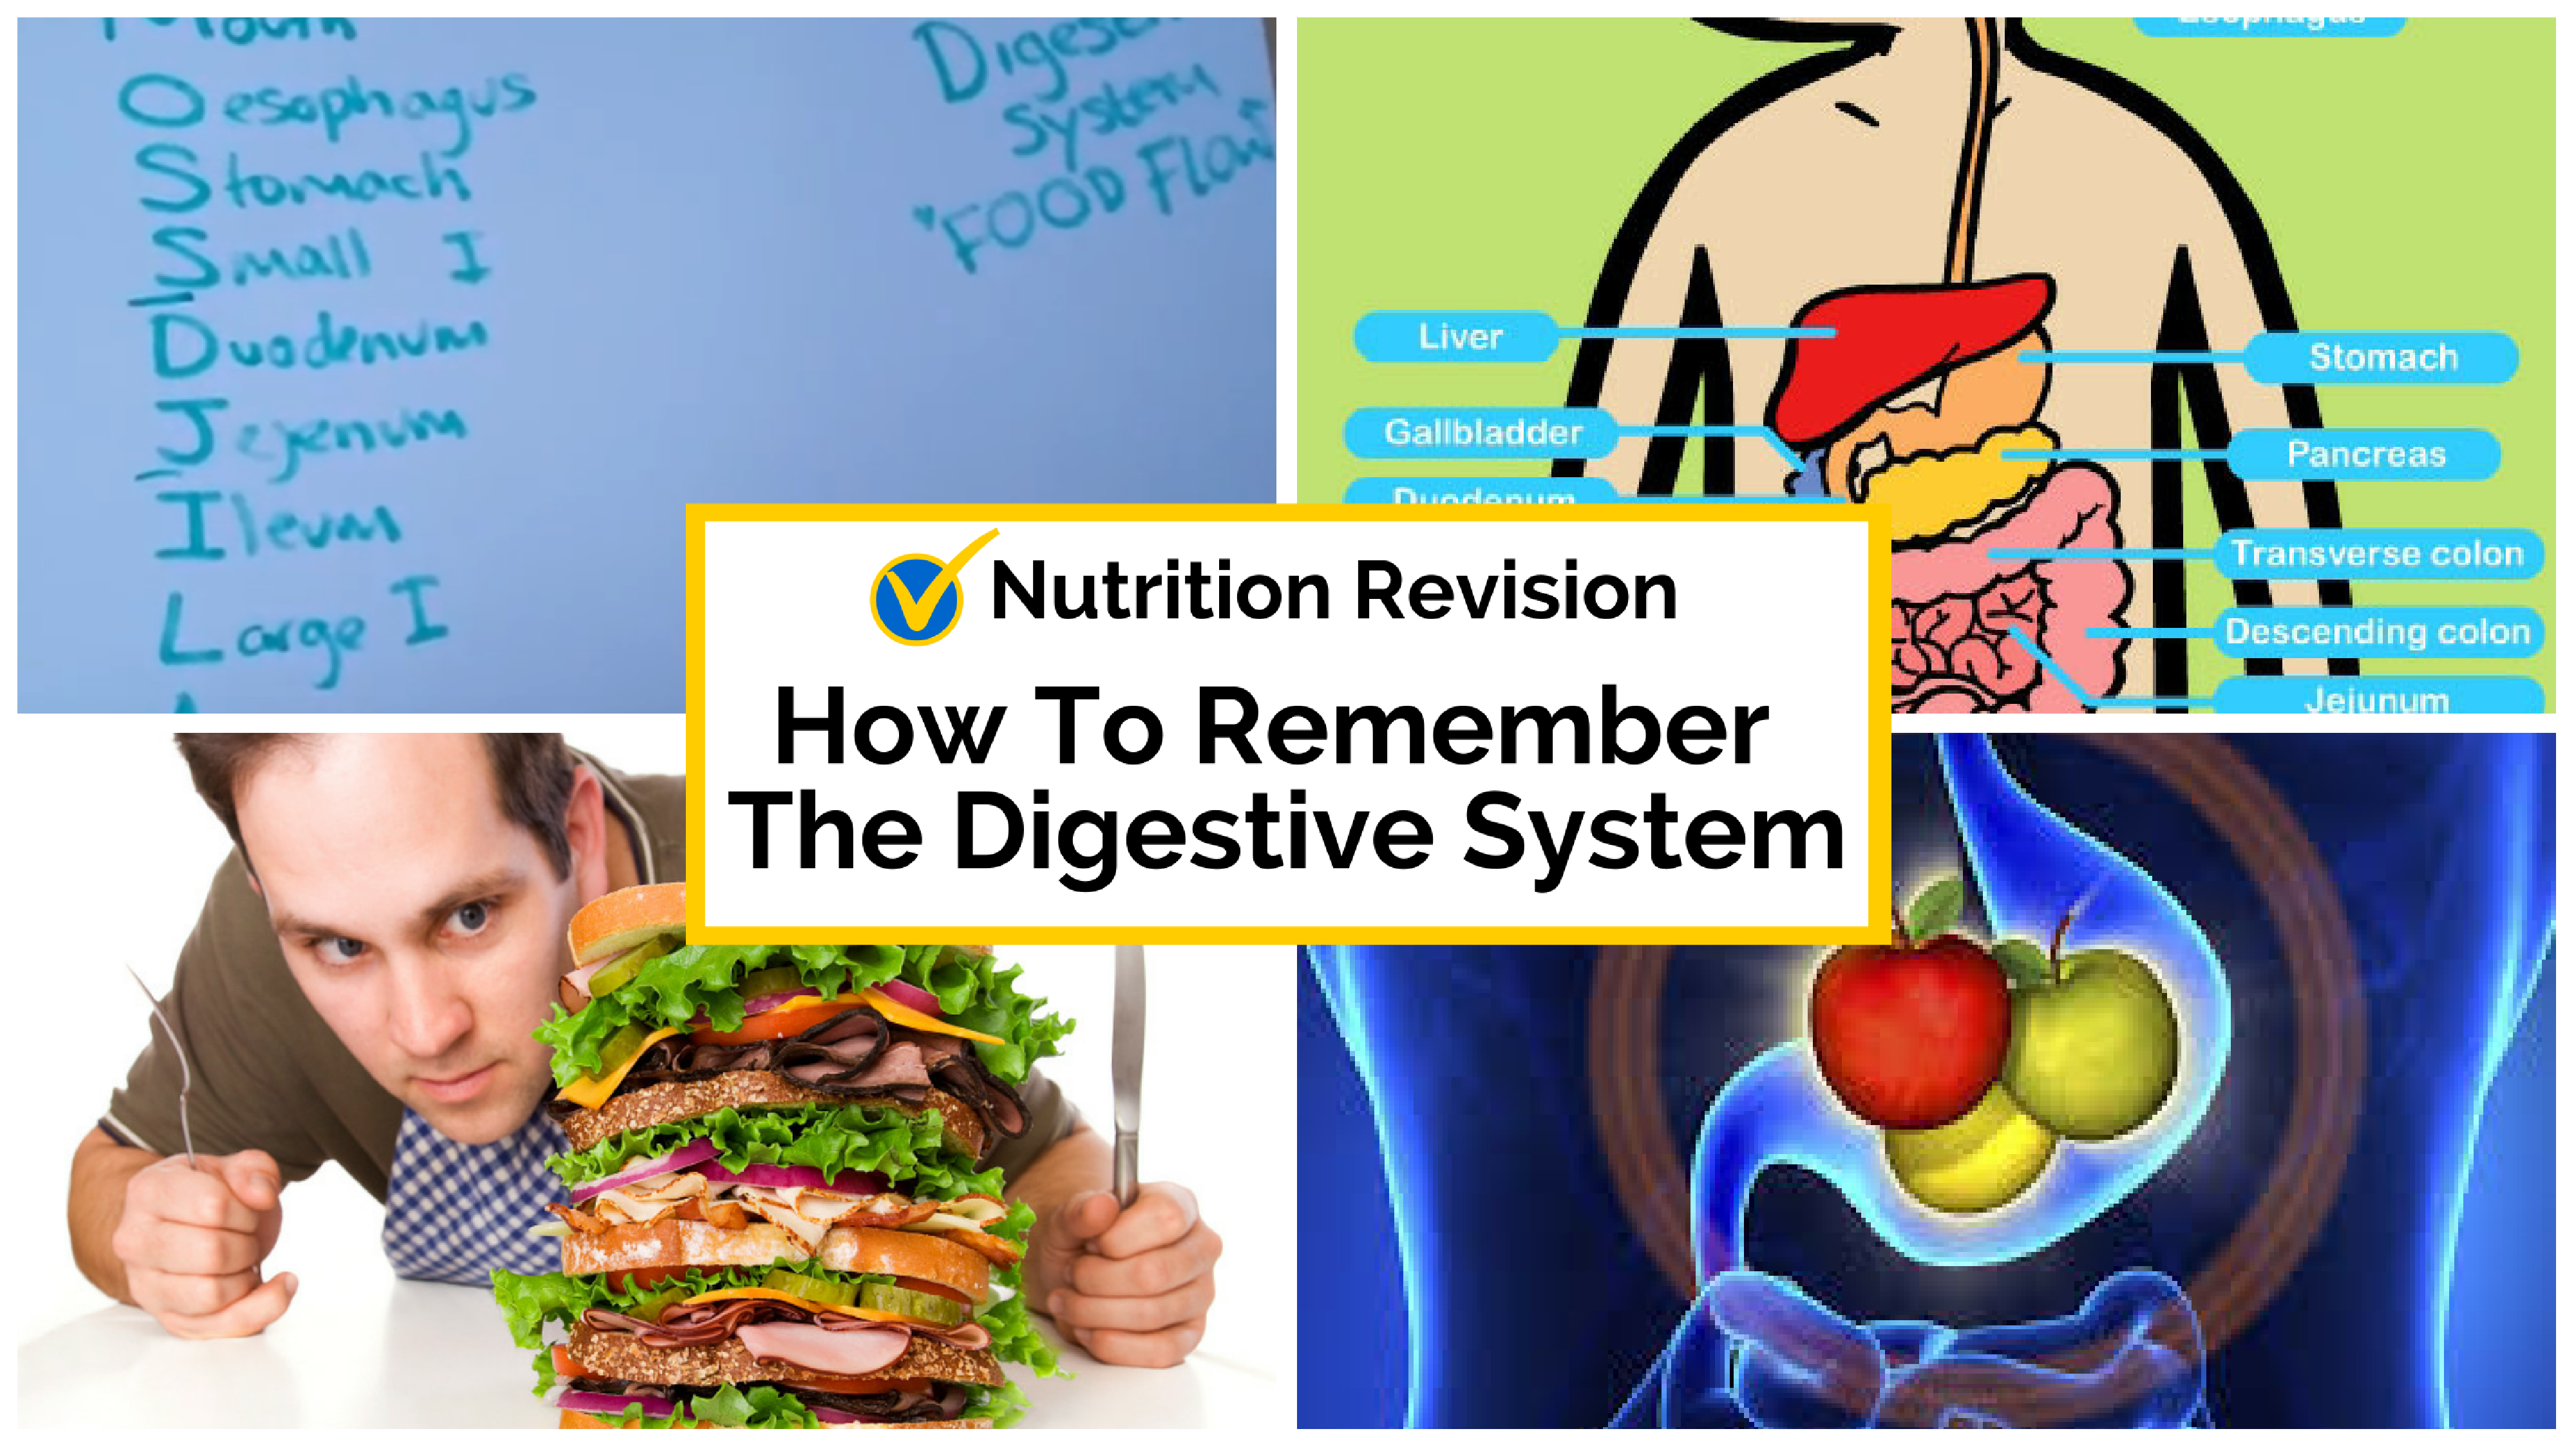 How To Remember the Digestive System